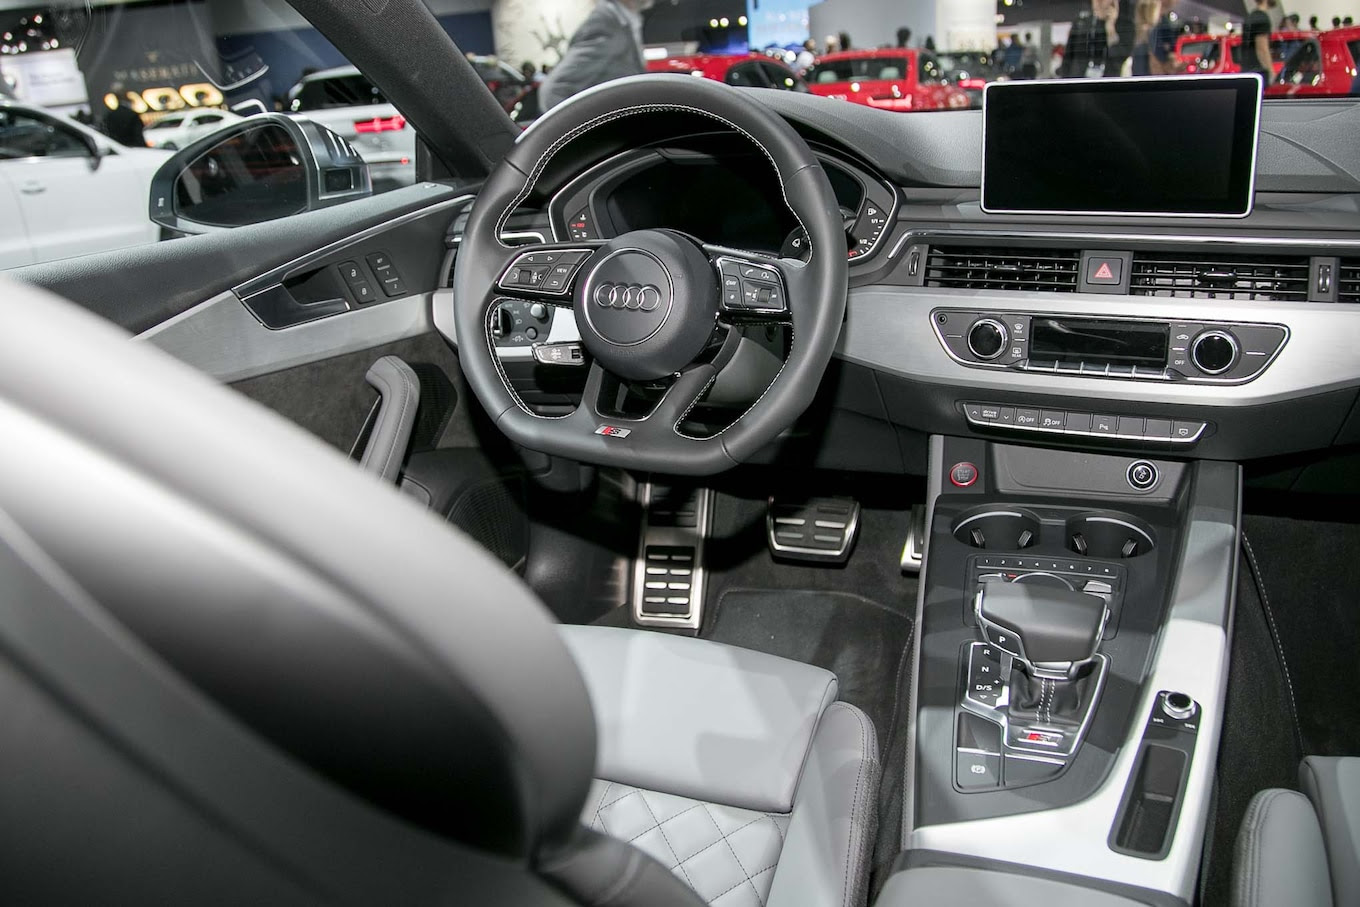 2018 Acura Tlx Interior New Cars Review